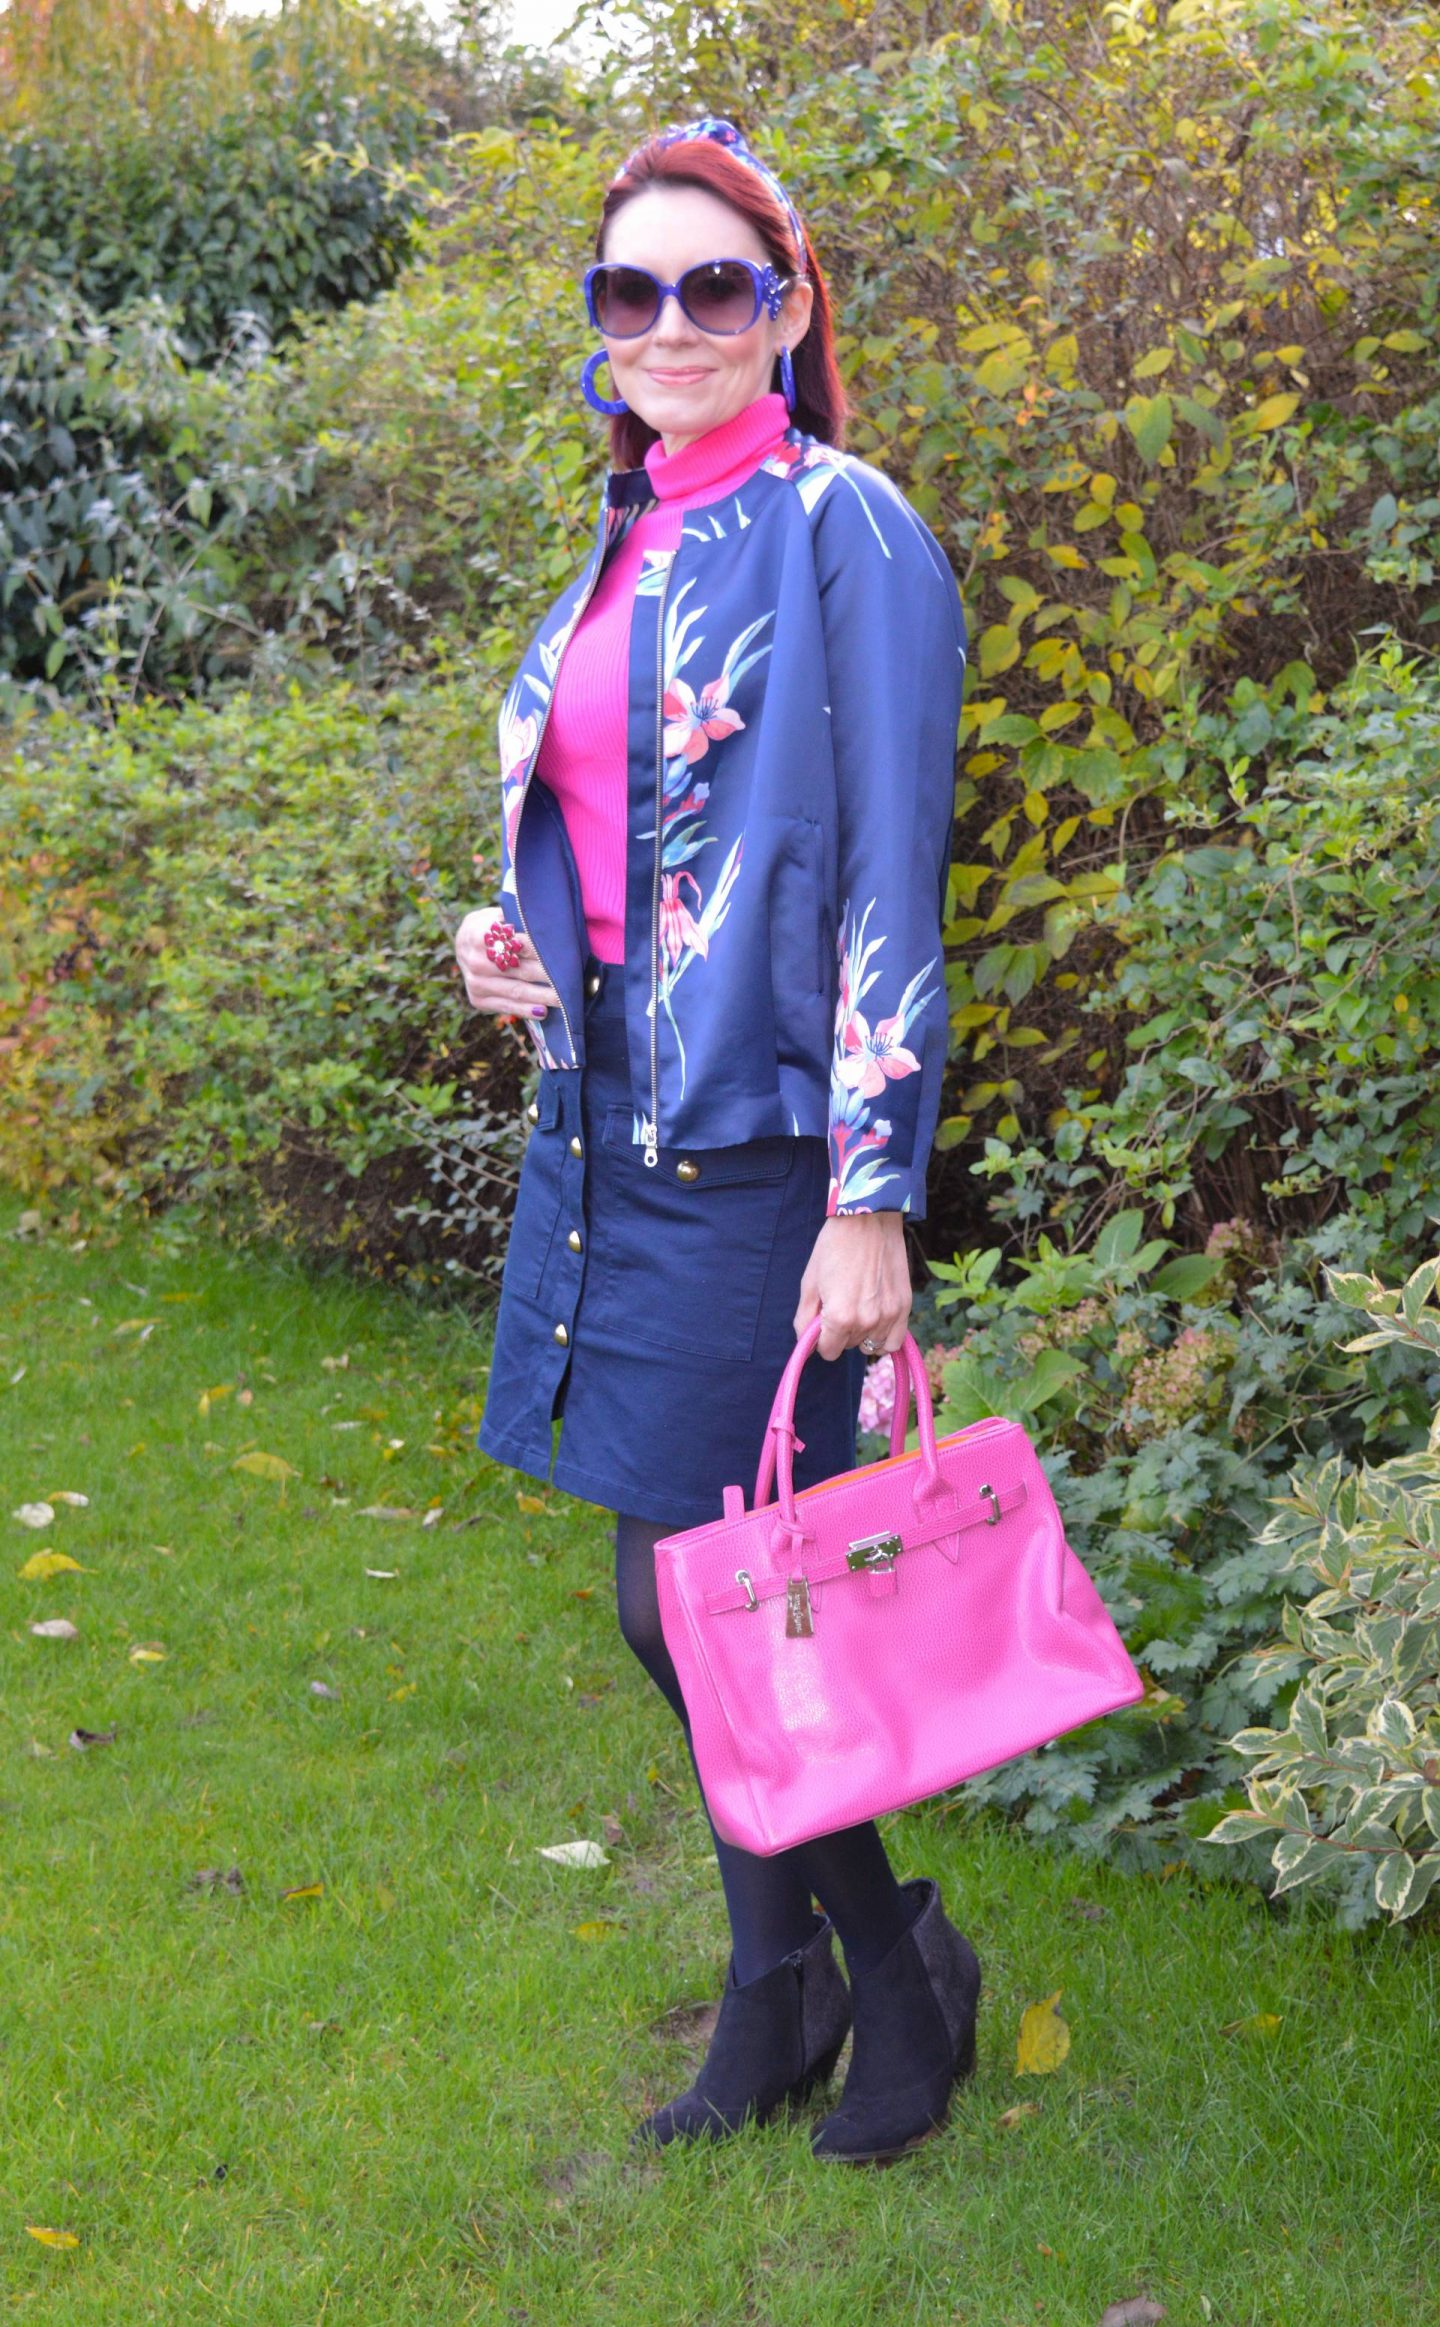 Floral Print Bomber Jacket With Hot Pink Accents, Lanretro head tie